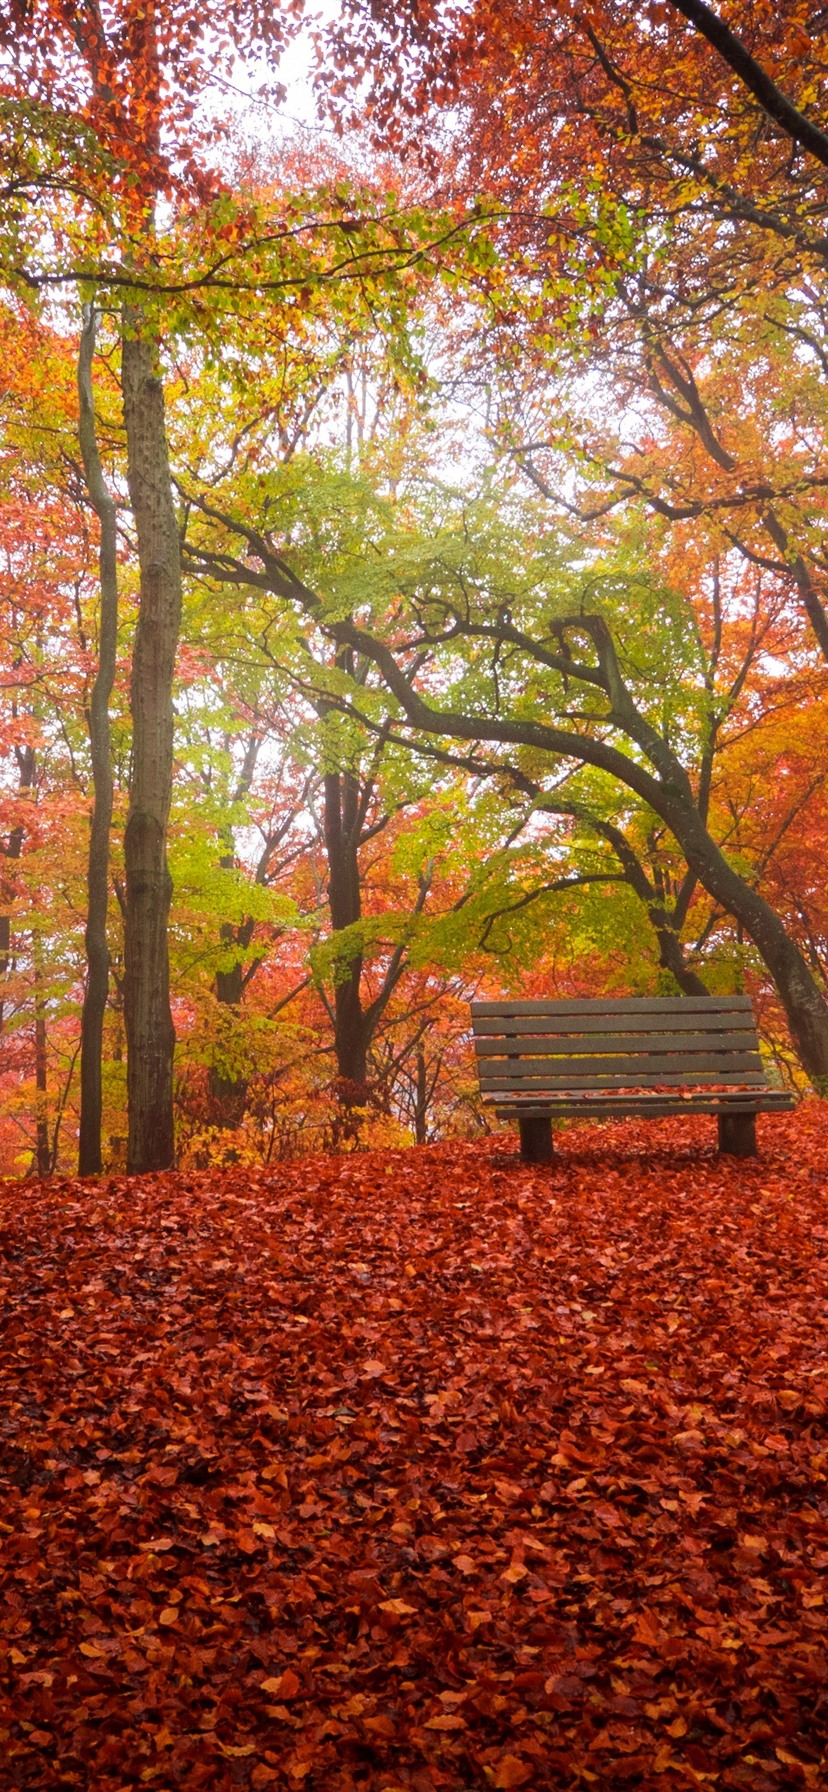 Autumn Trees Red Leaves Ground Bench Park 1125x2436 Iphone 11 Pro Xs X Wallpaper Background Picture Image